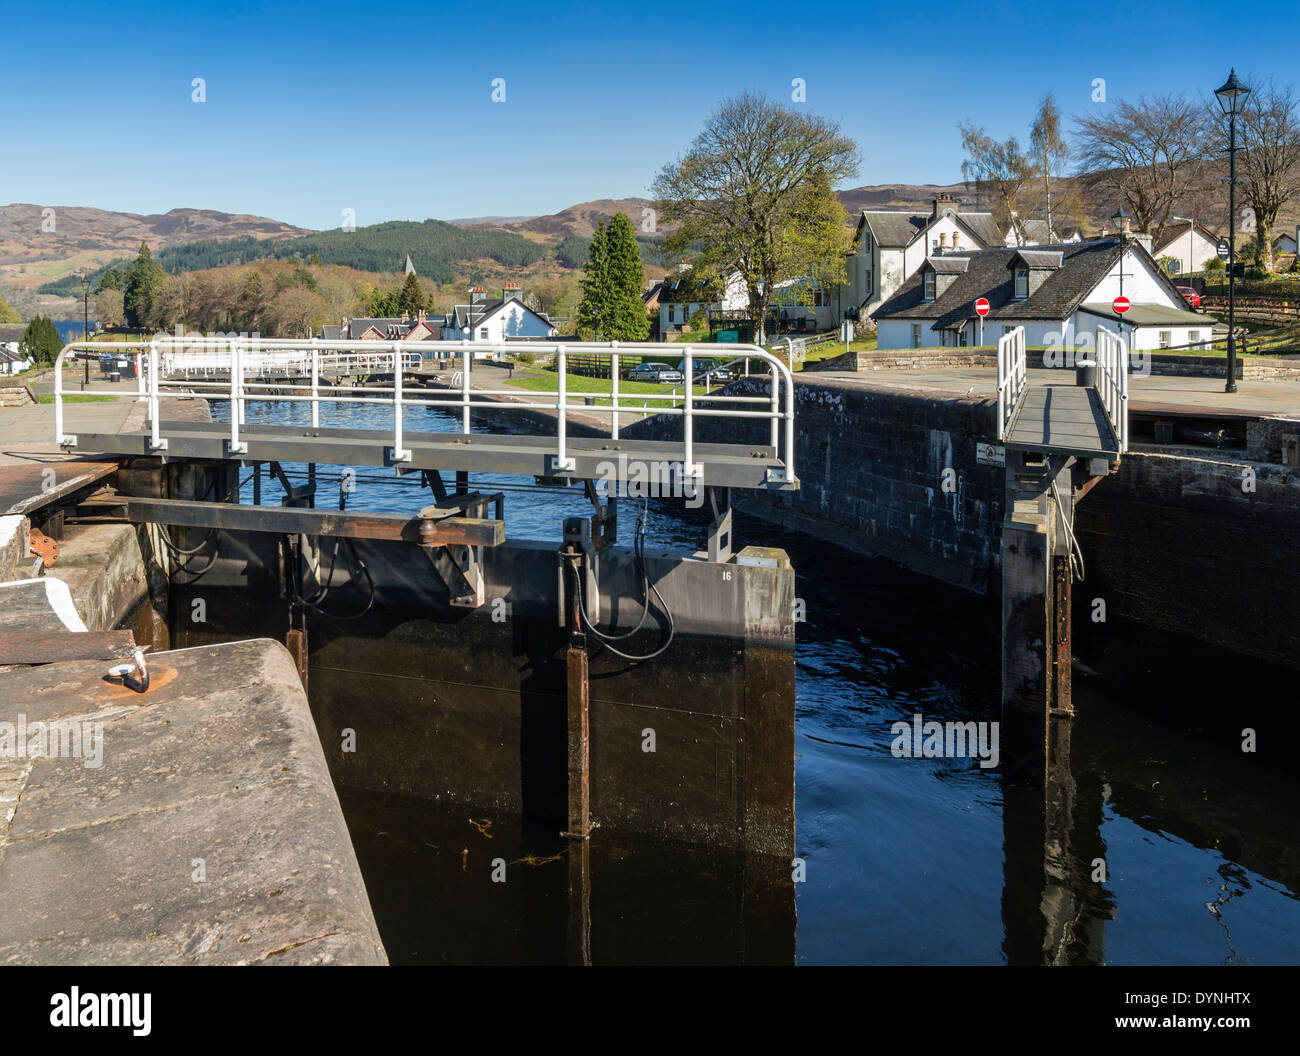 LOCK GATES OPENING ON TELFORDS LOCKS ON THE CALEDONIAN CANAL AT FORT AUGUSTUS LOCH NESS - Stock Image